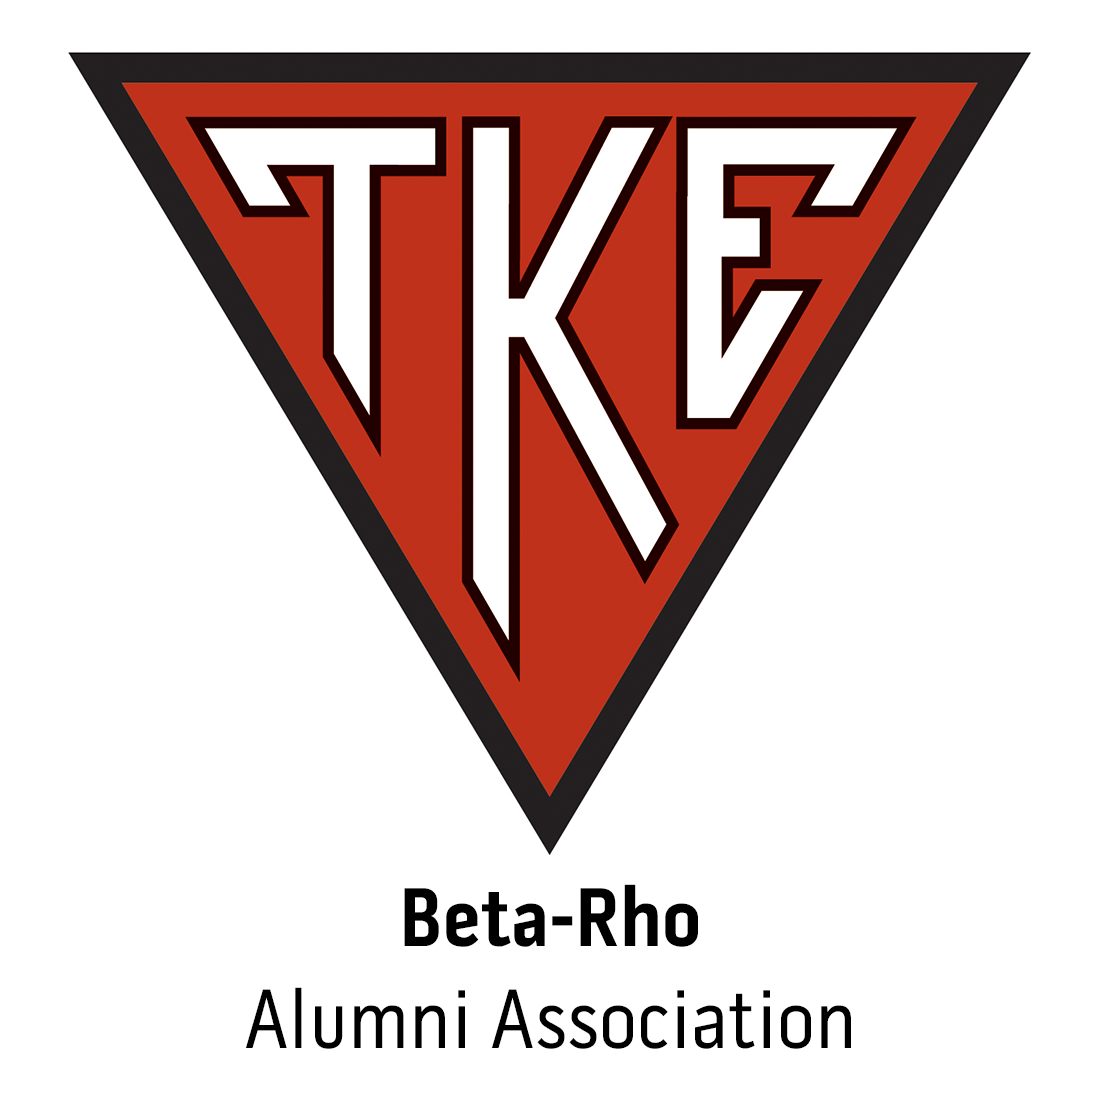 Beta-Rho Alumni Association at University of Akron